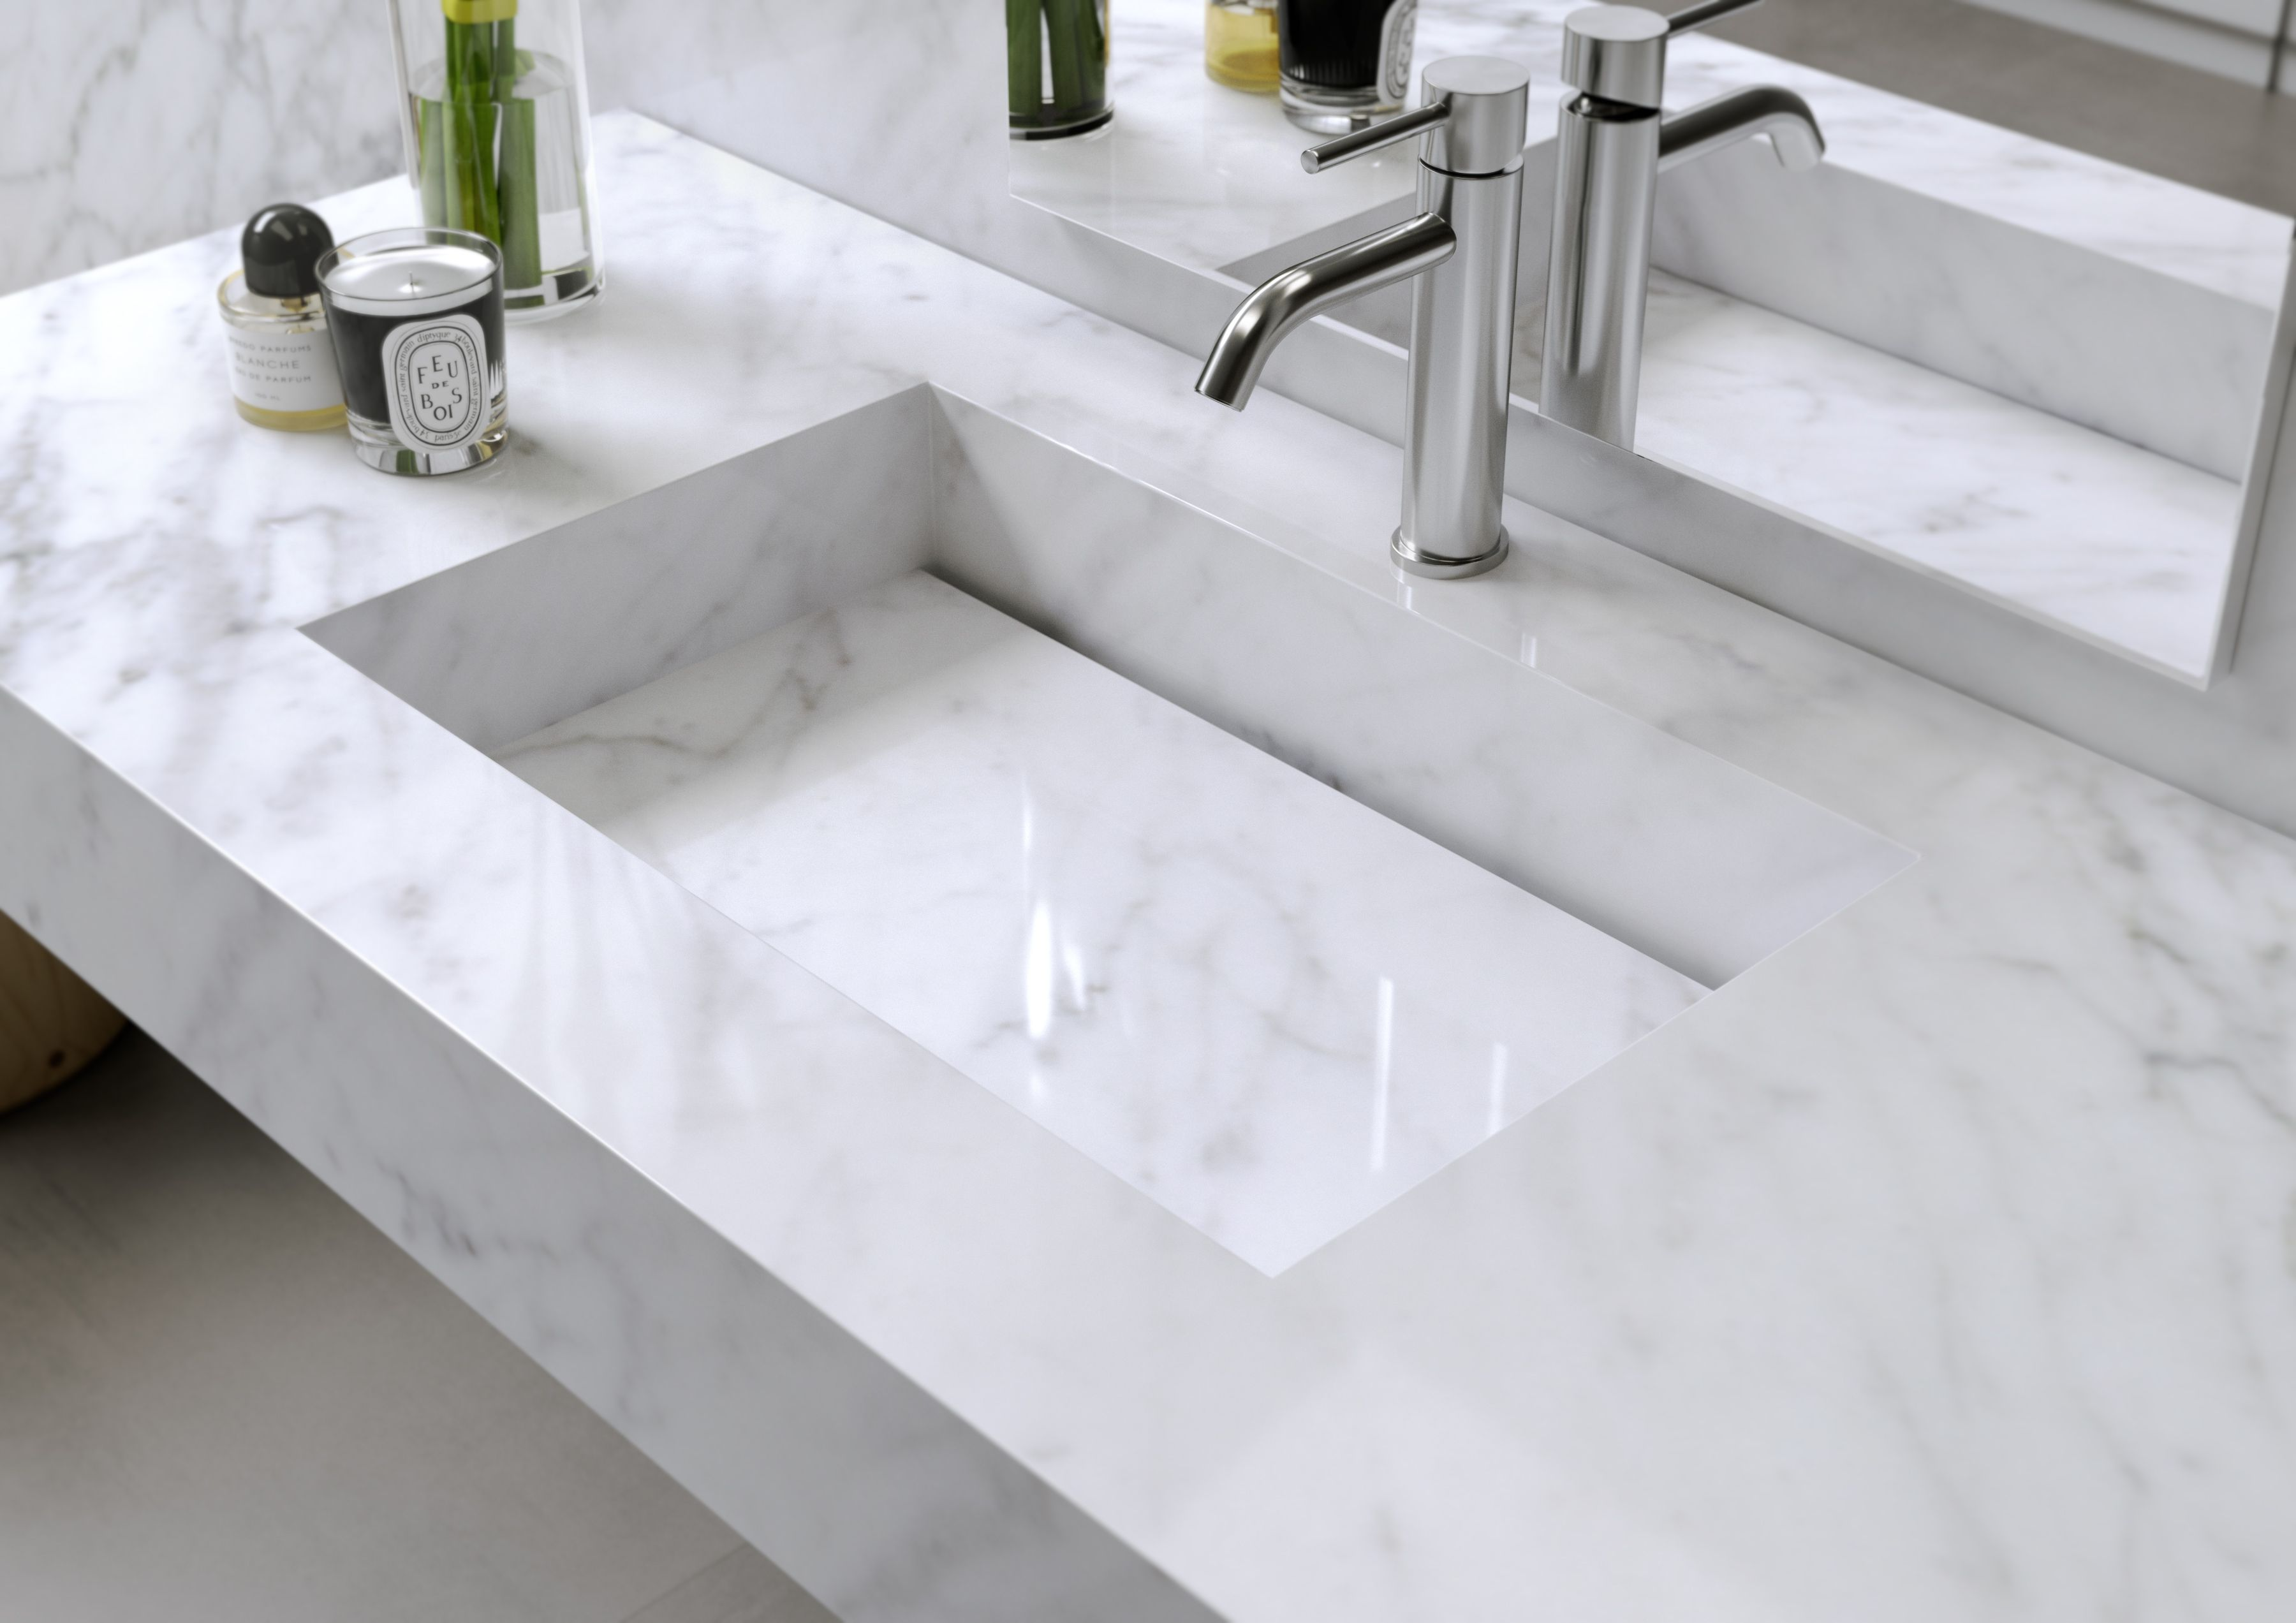 Plan vasque en Marbre Carrara / Sink in authentic Marble Carrara